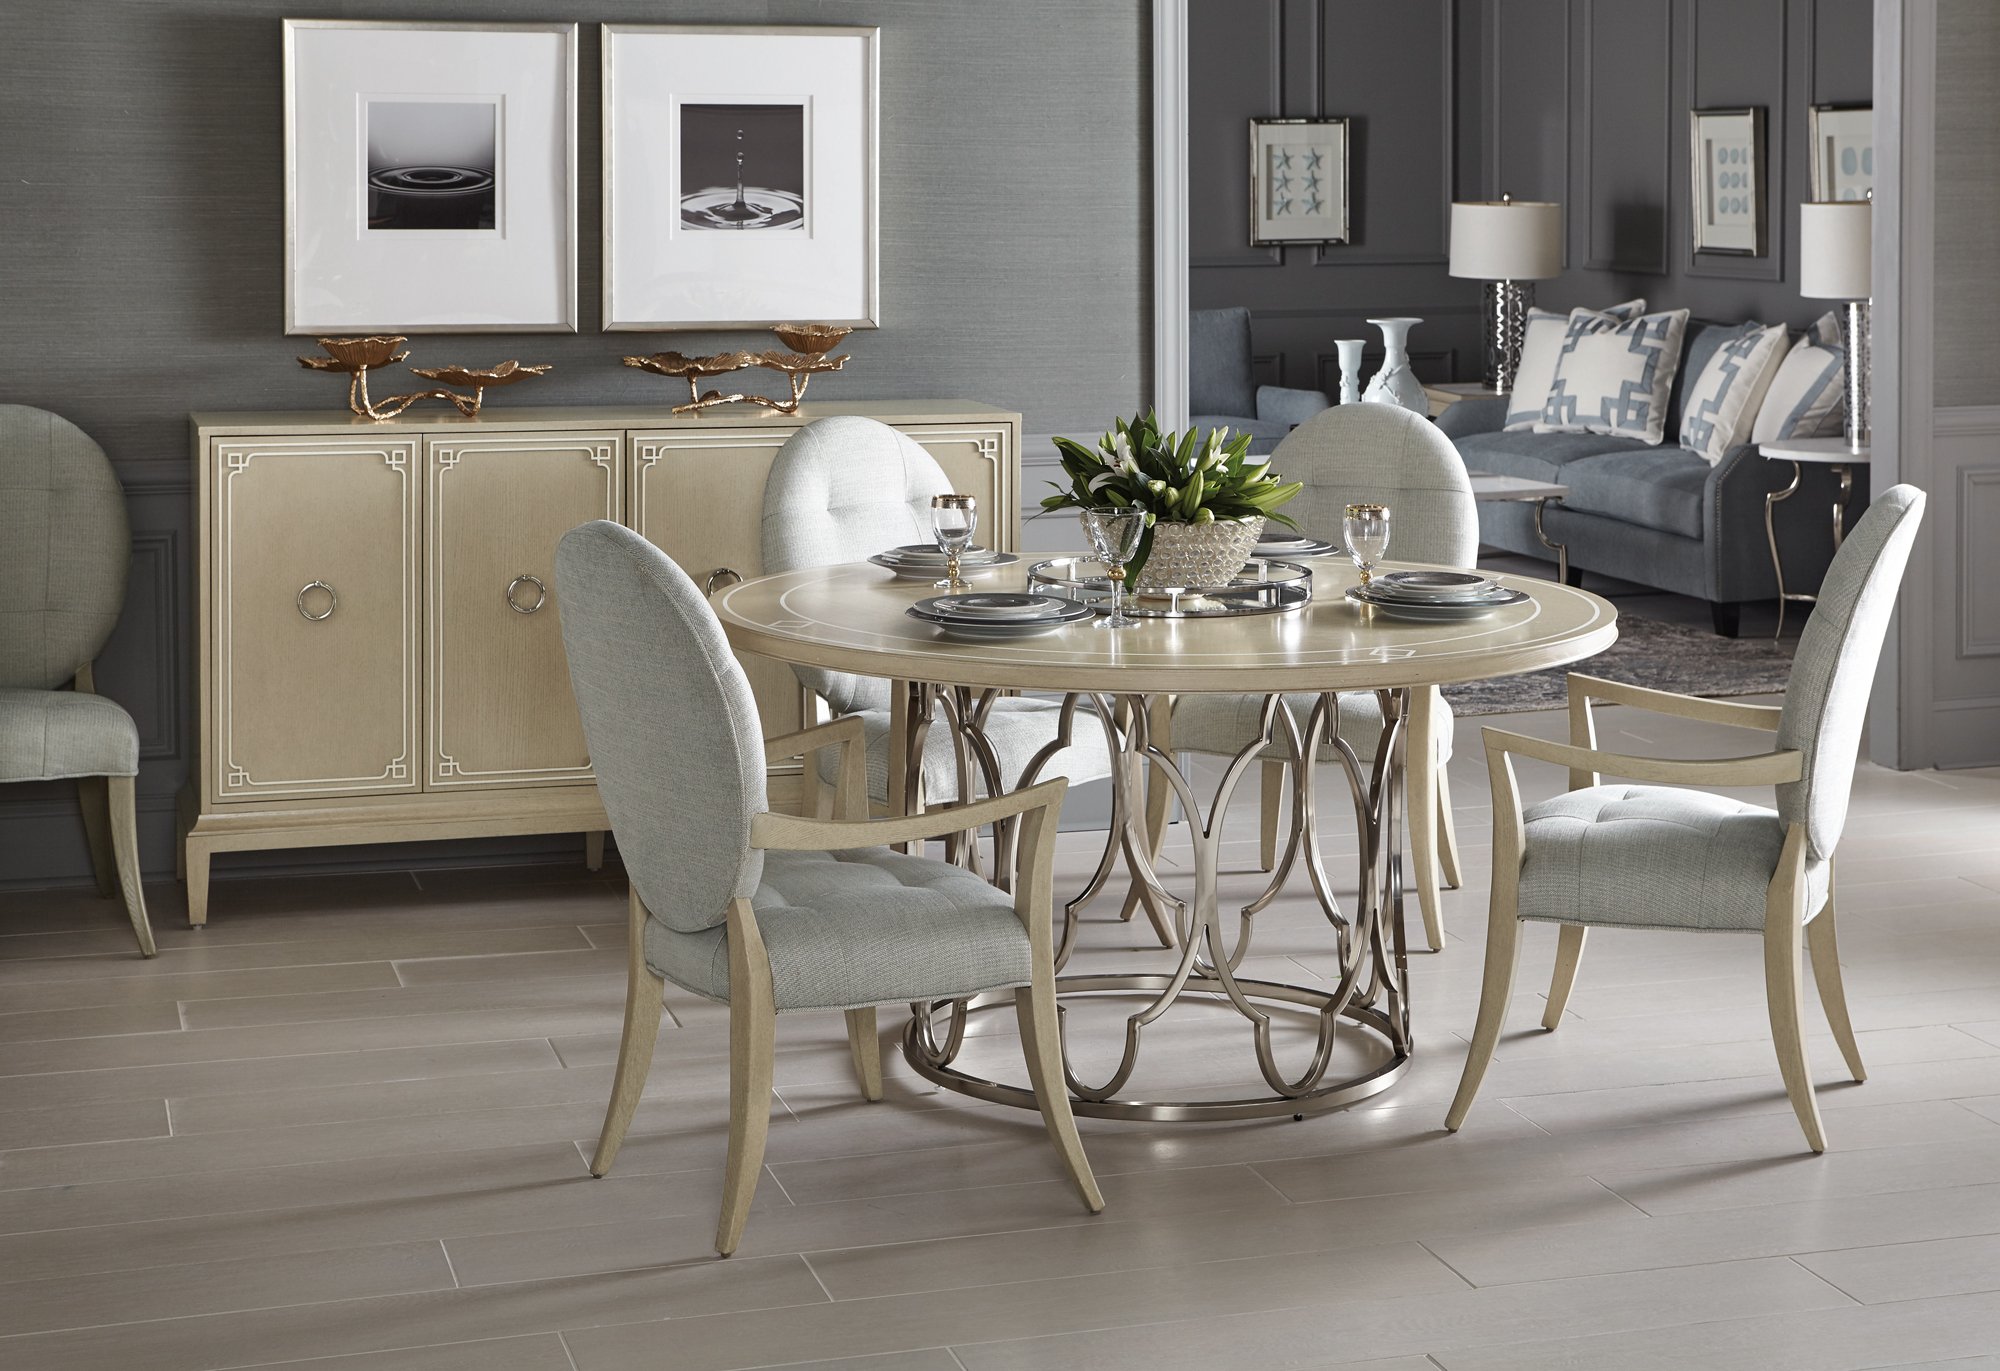 dining table 371 272 371 273 read more about round dining table print